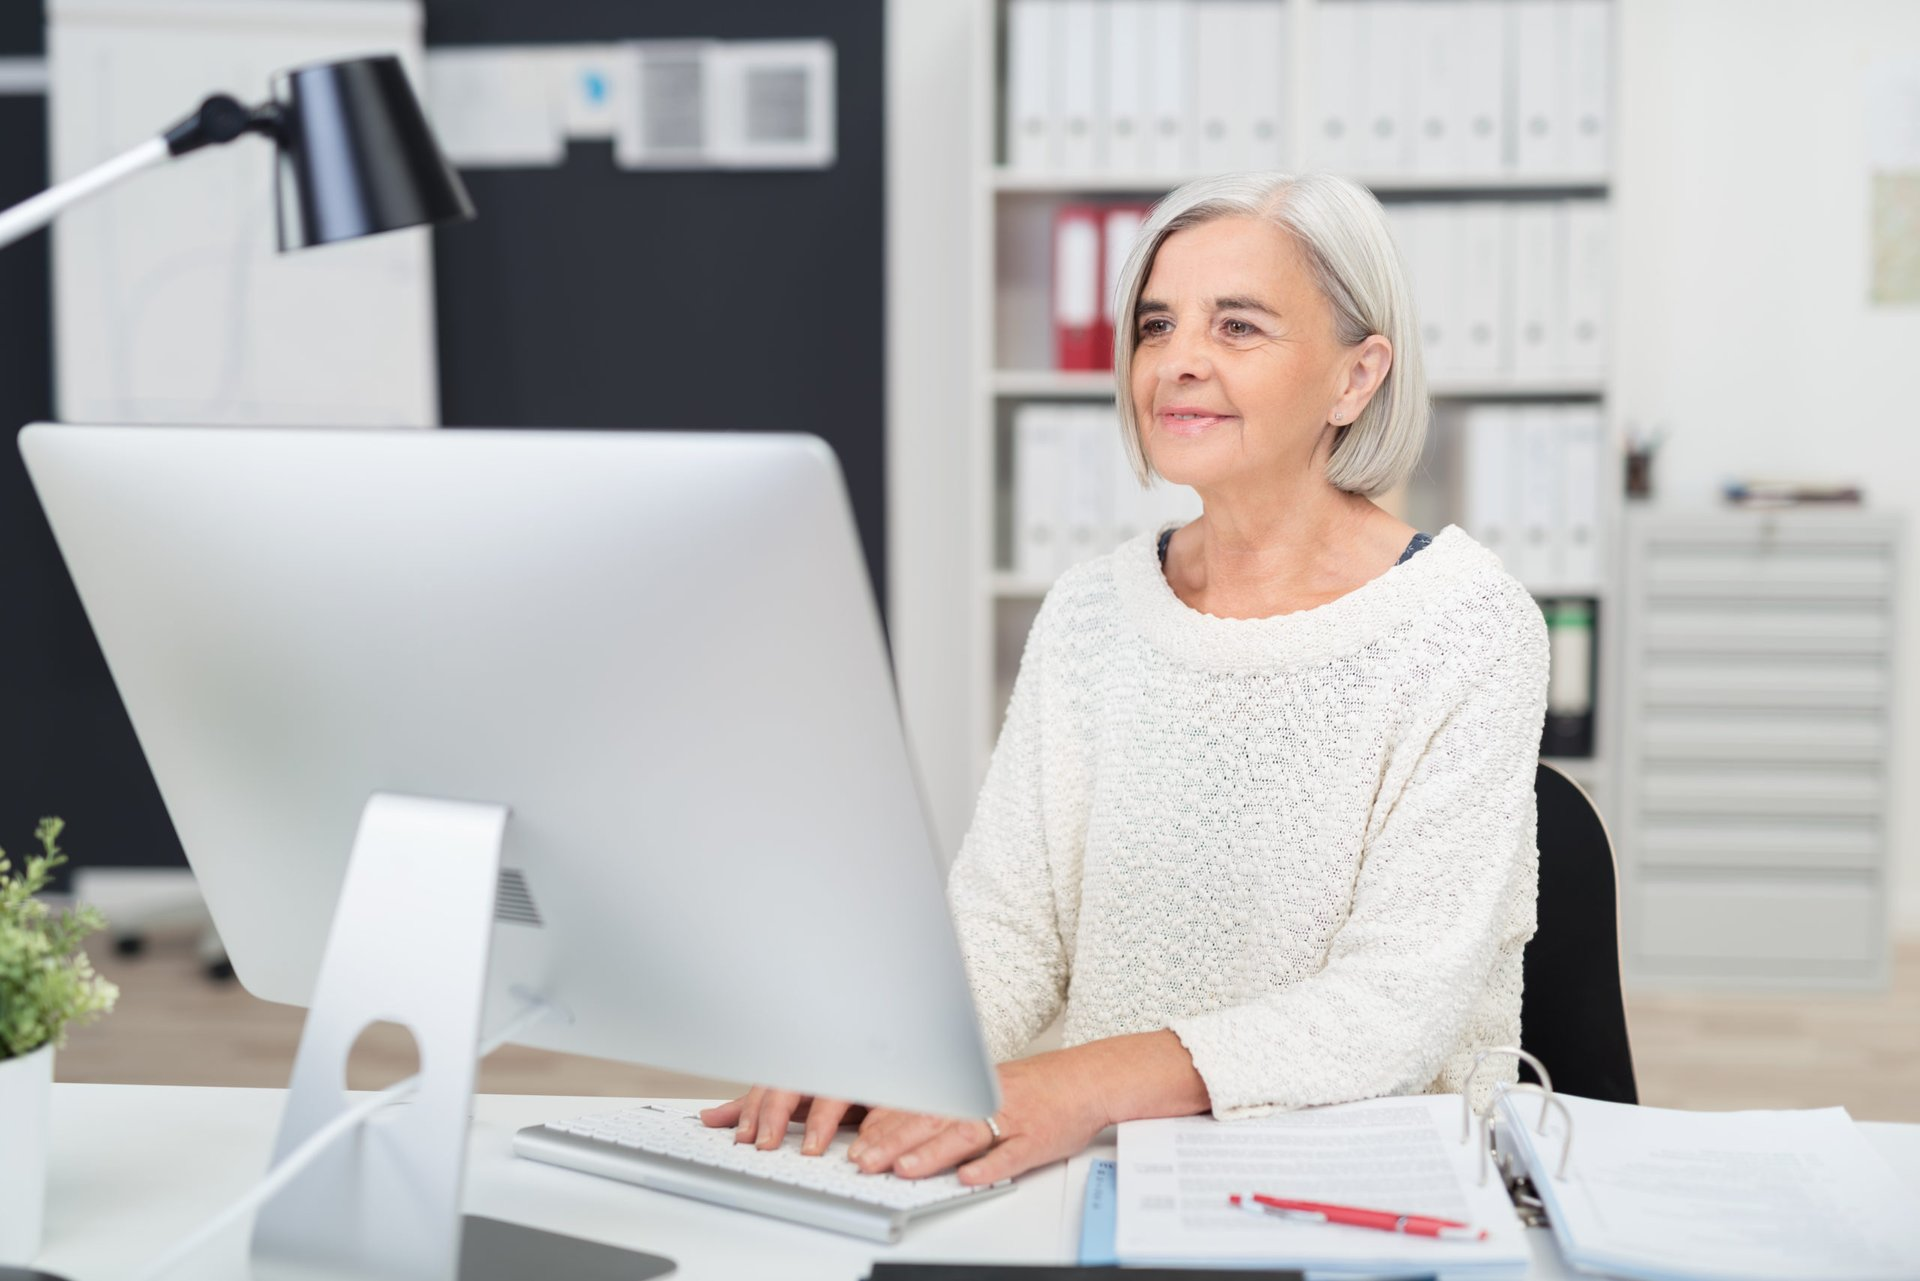 Senior working in an office